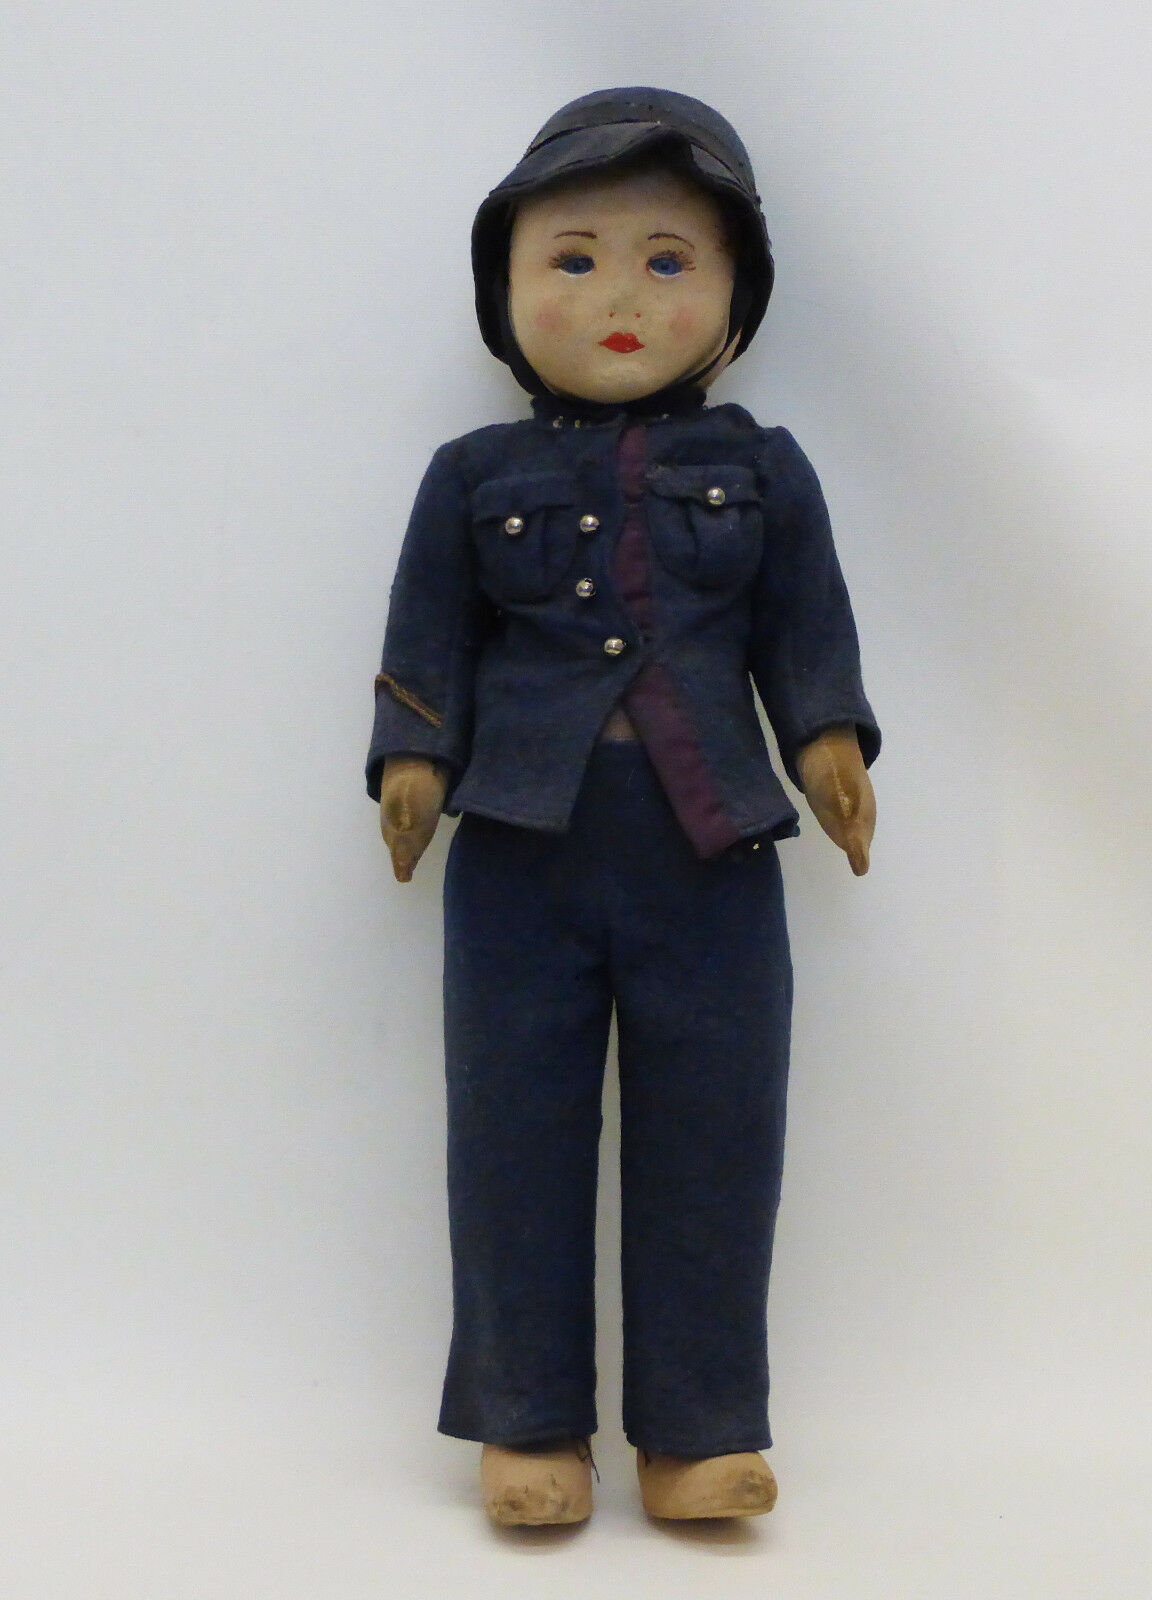 Antico Chad Valley Police Woman doll